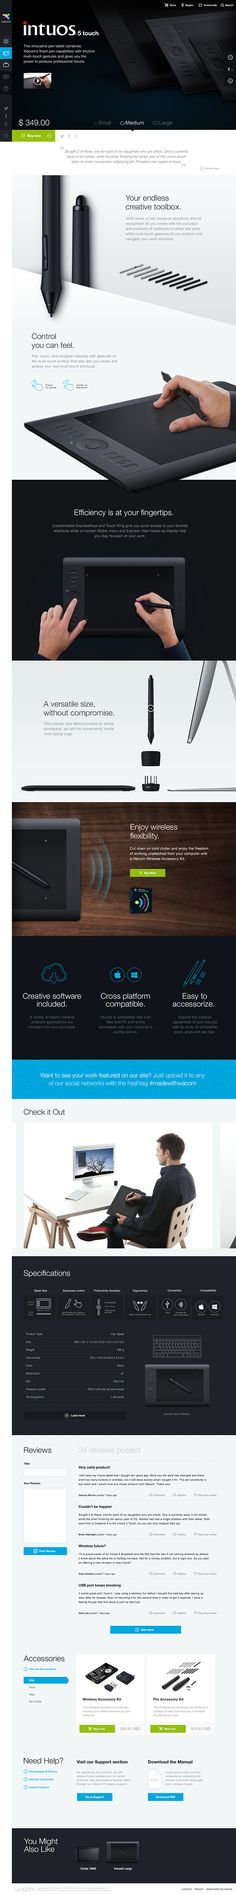 Wacom.com Re-Design on Behance